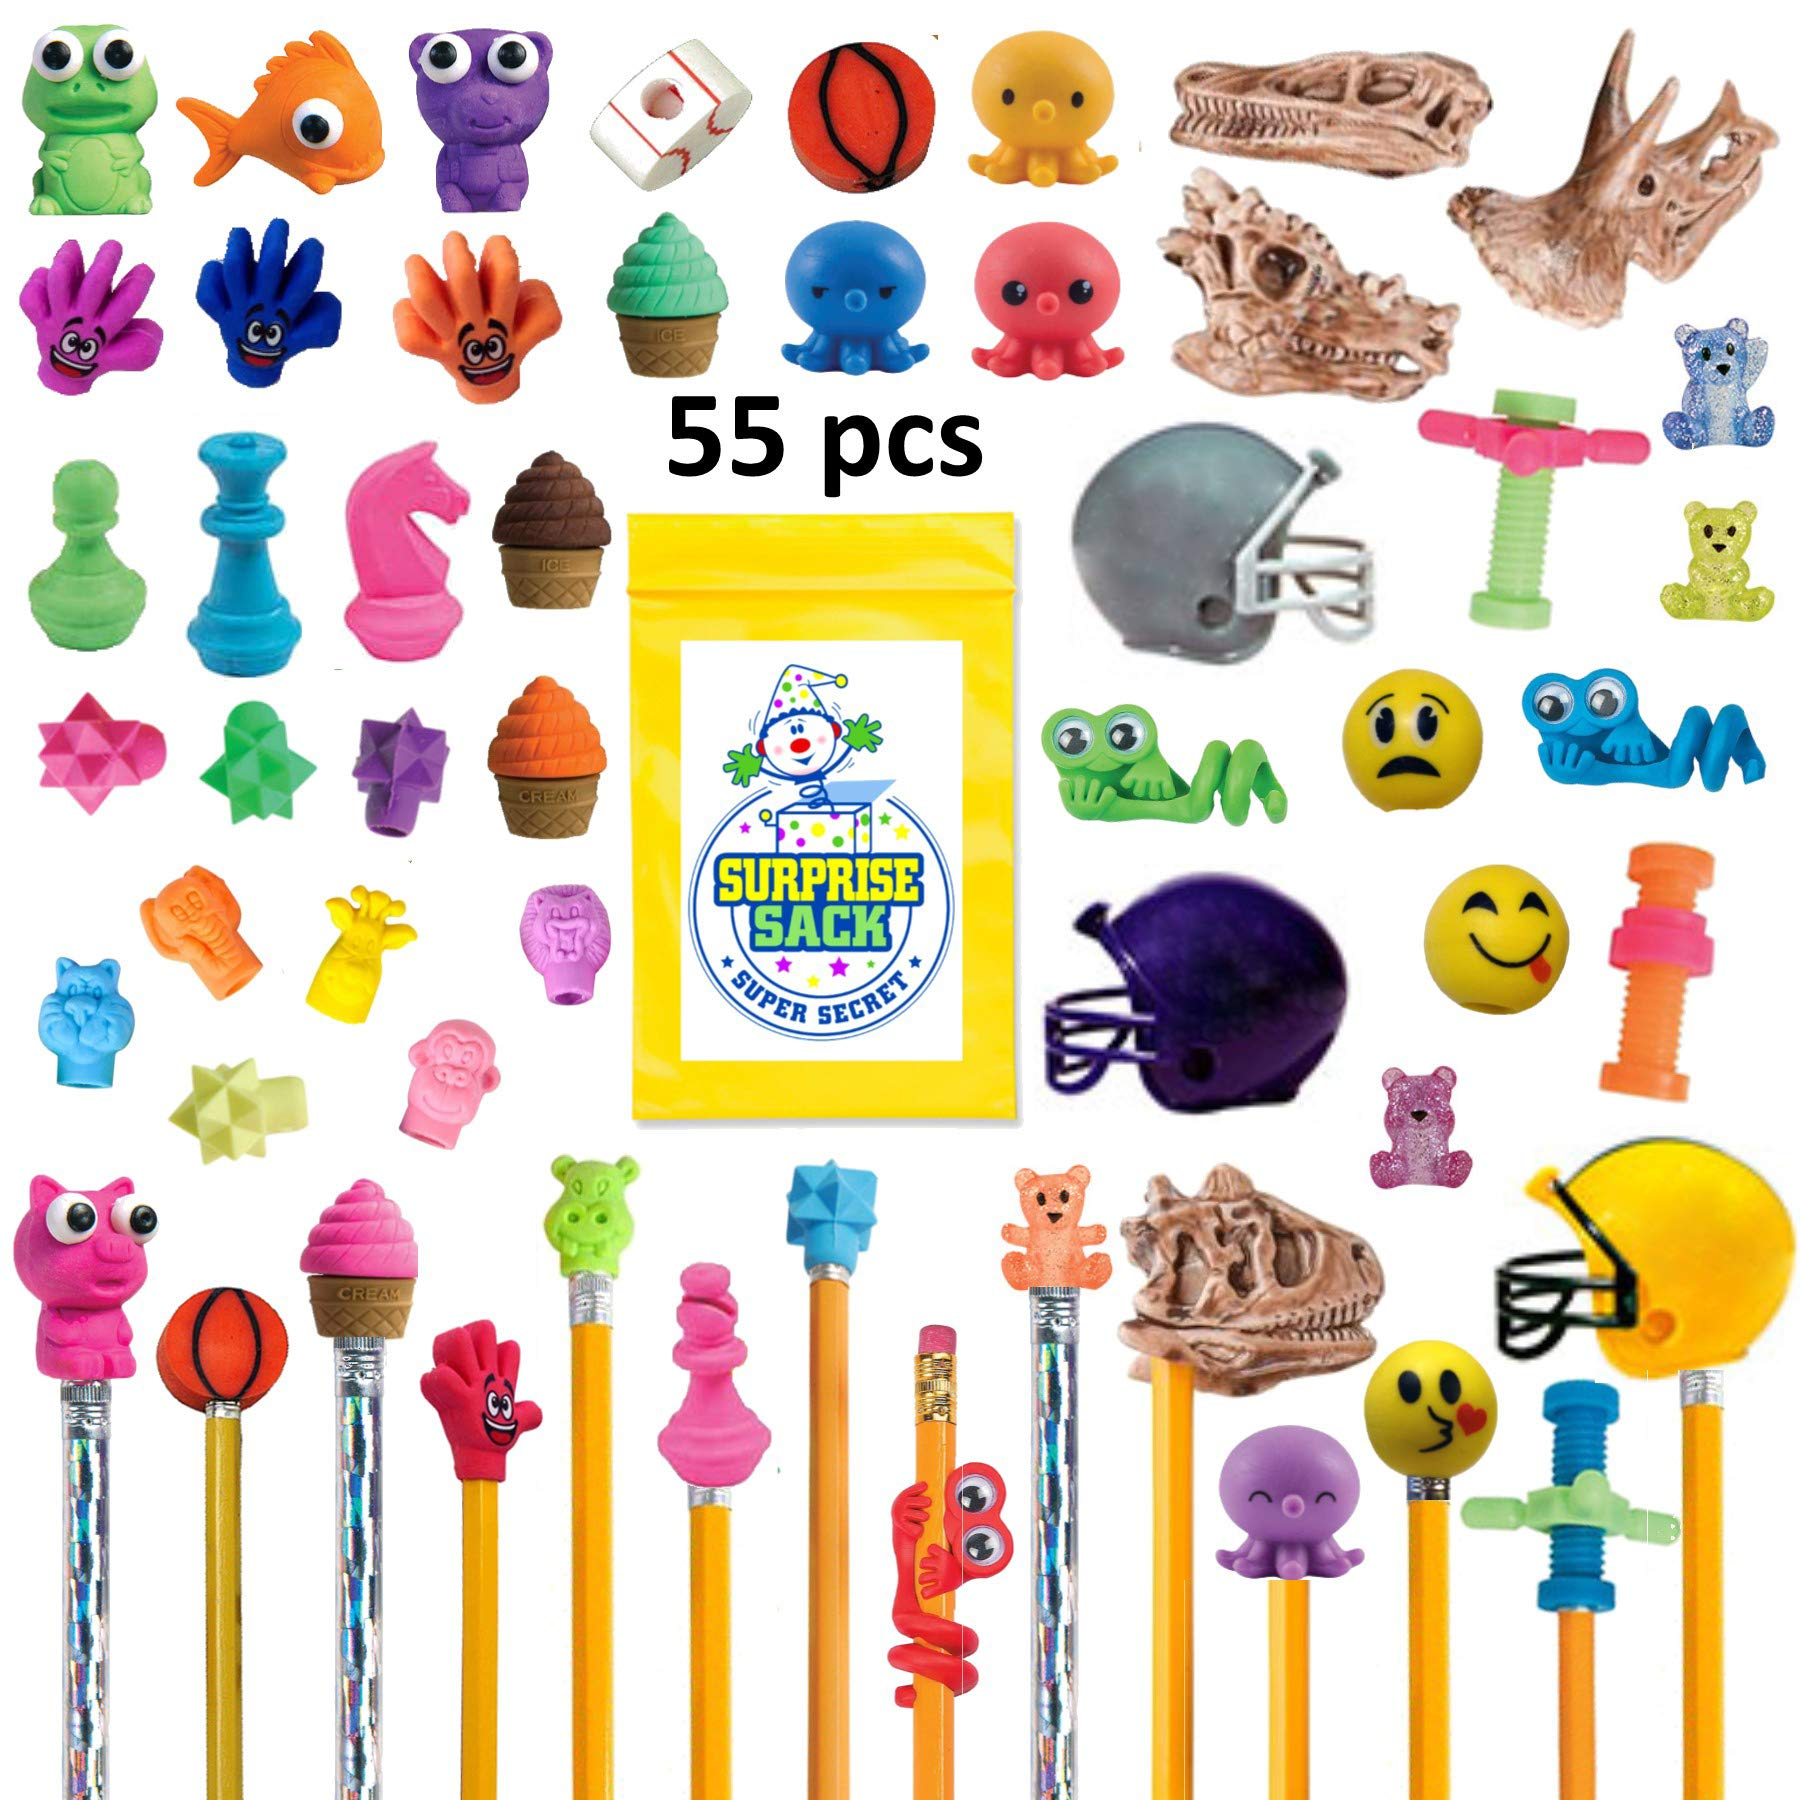 Super Secret Surprise Sack 50+ pc Amazing Pencil Topper Variety Pack (30 Eraser Pencil Toppers and 25 Fun Fidget Pencil Toppers) with 1 (TM) by Super Secret Surprise Sack